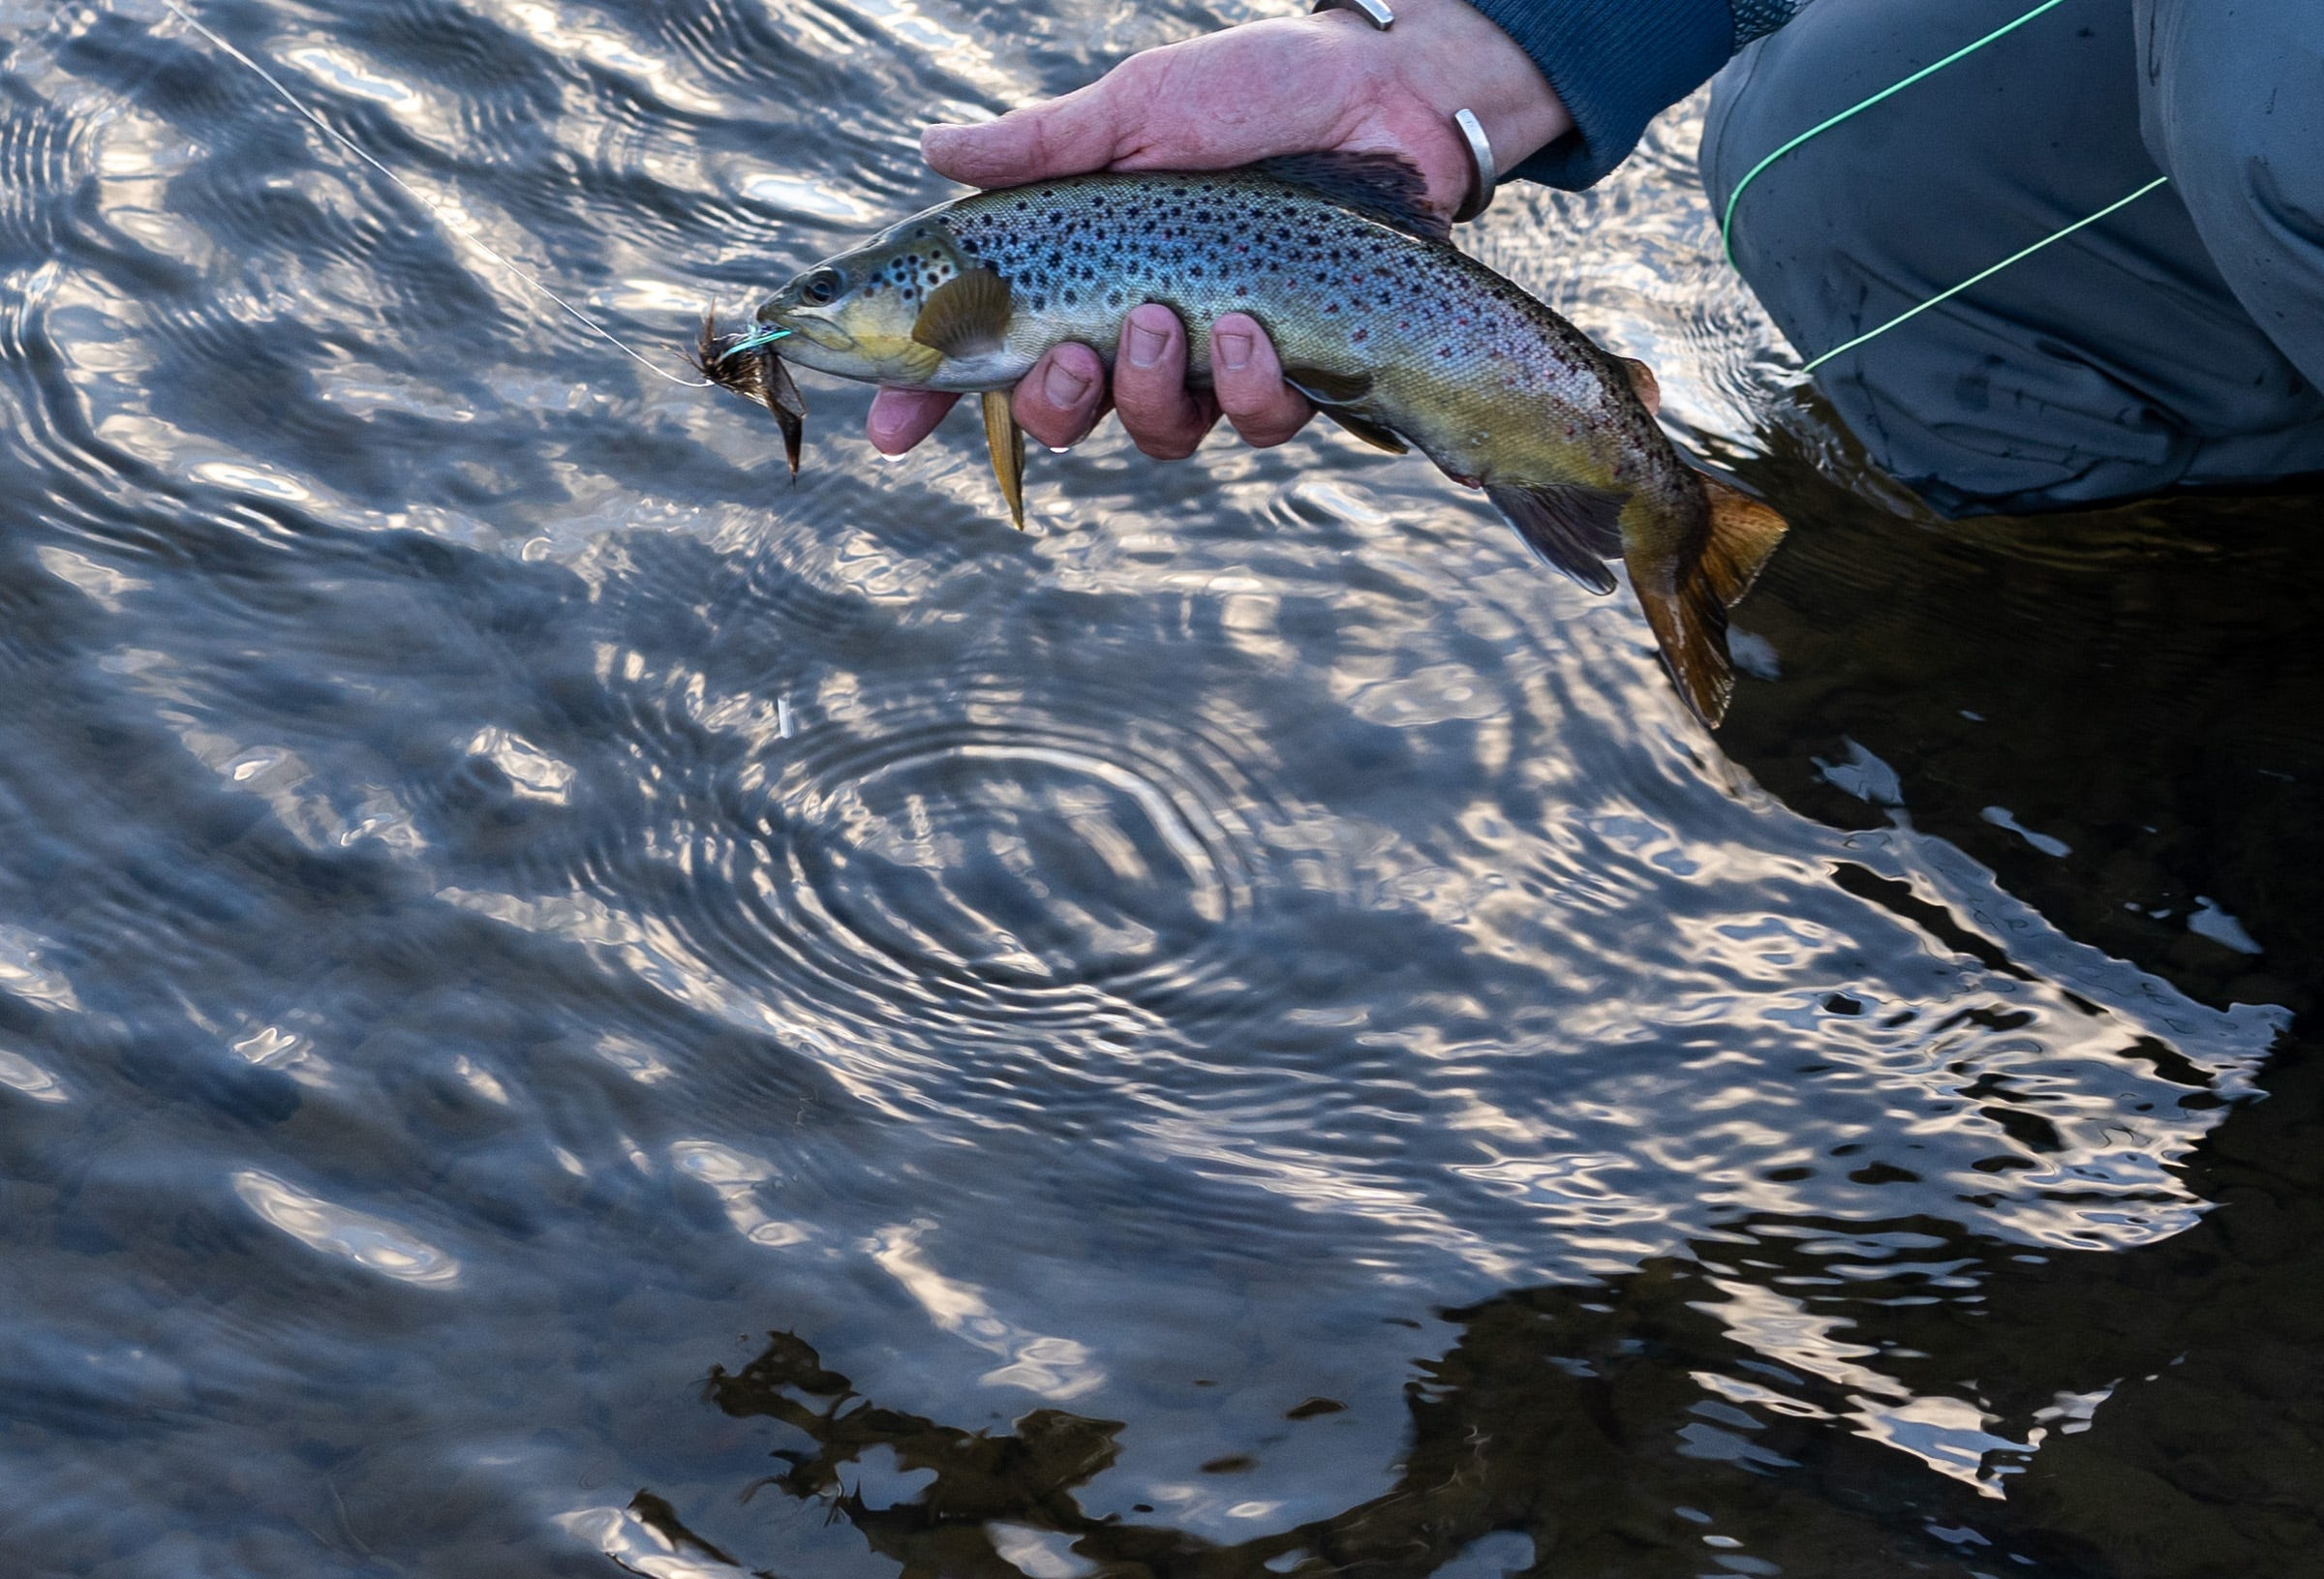 Matt Rice of the conservation group American Rivers holds a trout while fishing in the Colorado River near Kremmling, Colorado.